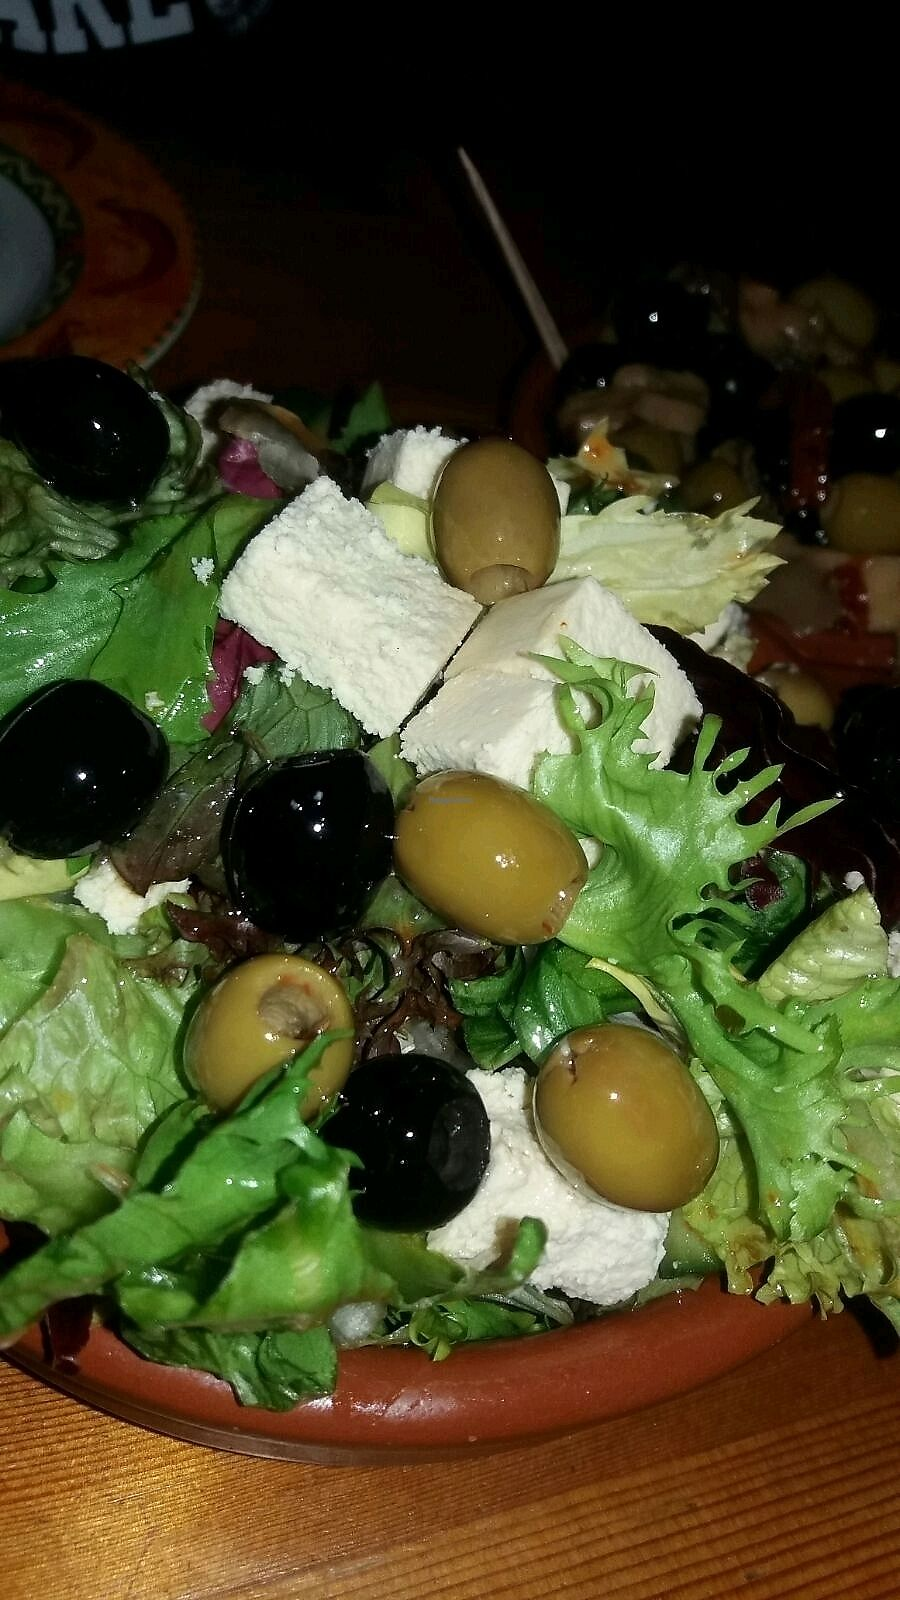 """Photo of Tapas Tree  by <a href=""""/members/profile/sgacton"""">sgacton</a> <br/>greek salad <br/> February 4, 2018  - <a href='/contact/abuse/image/111166/354724'>Report</a>"""